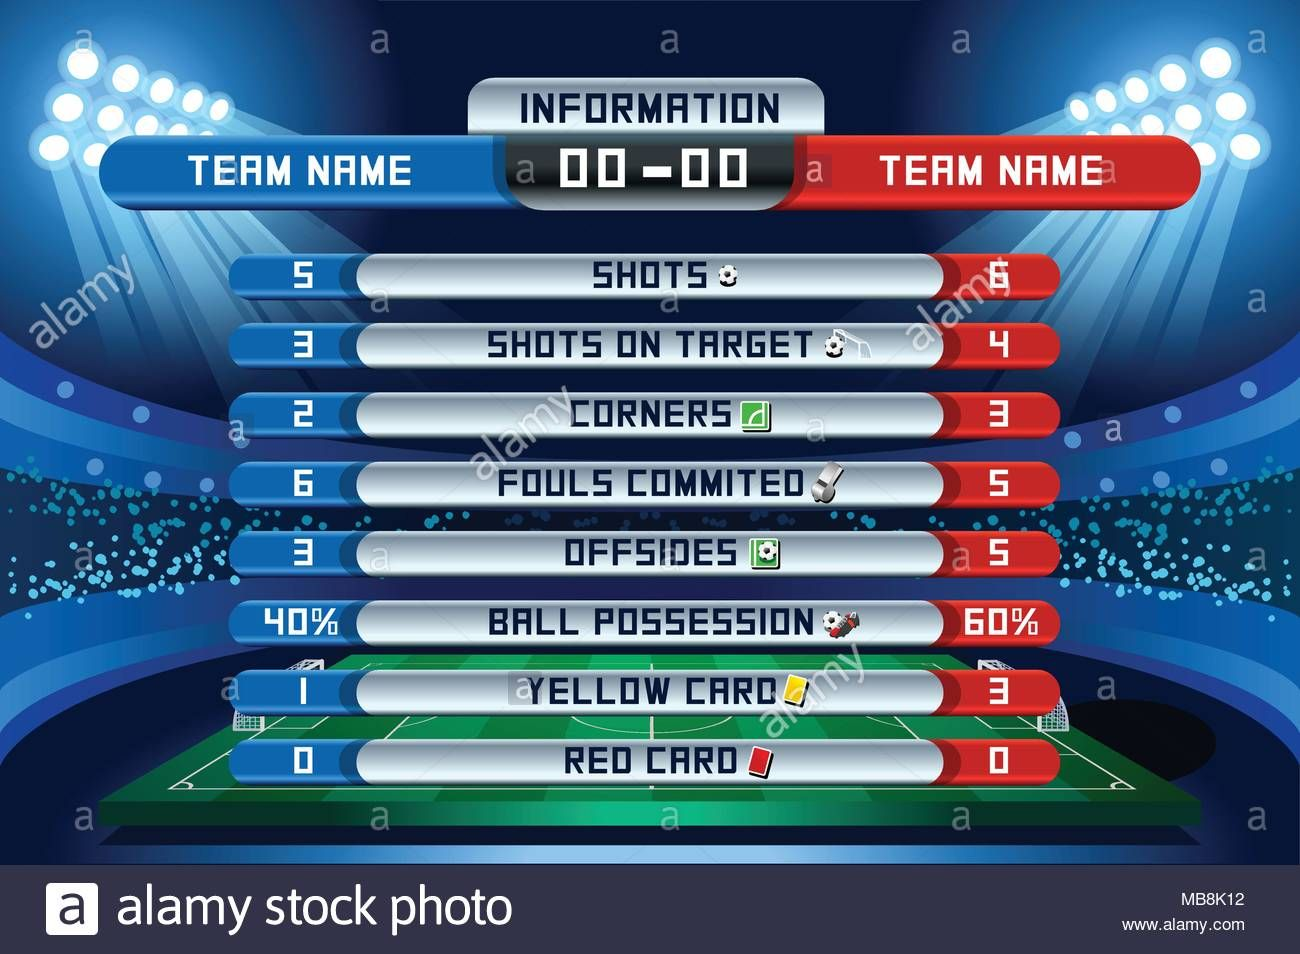 Image Result For Football In Game Stats Football Score Football Football Scoreboard